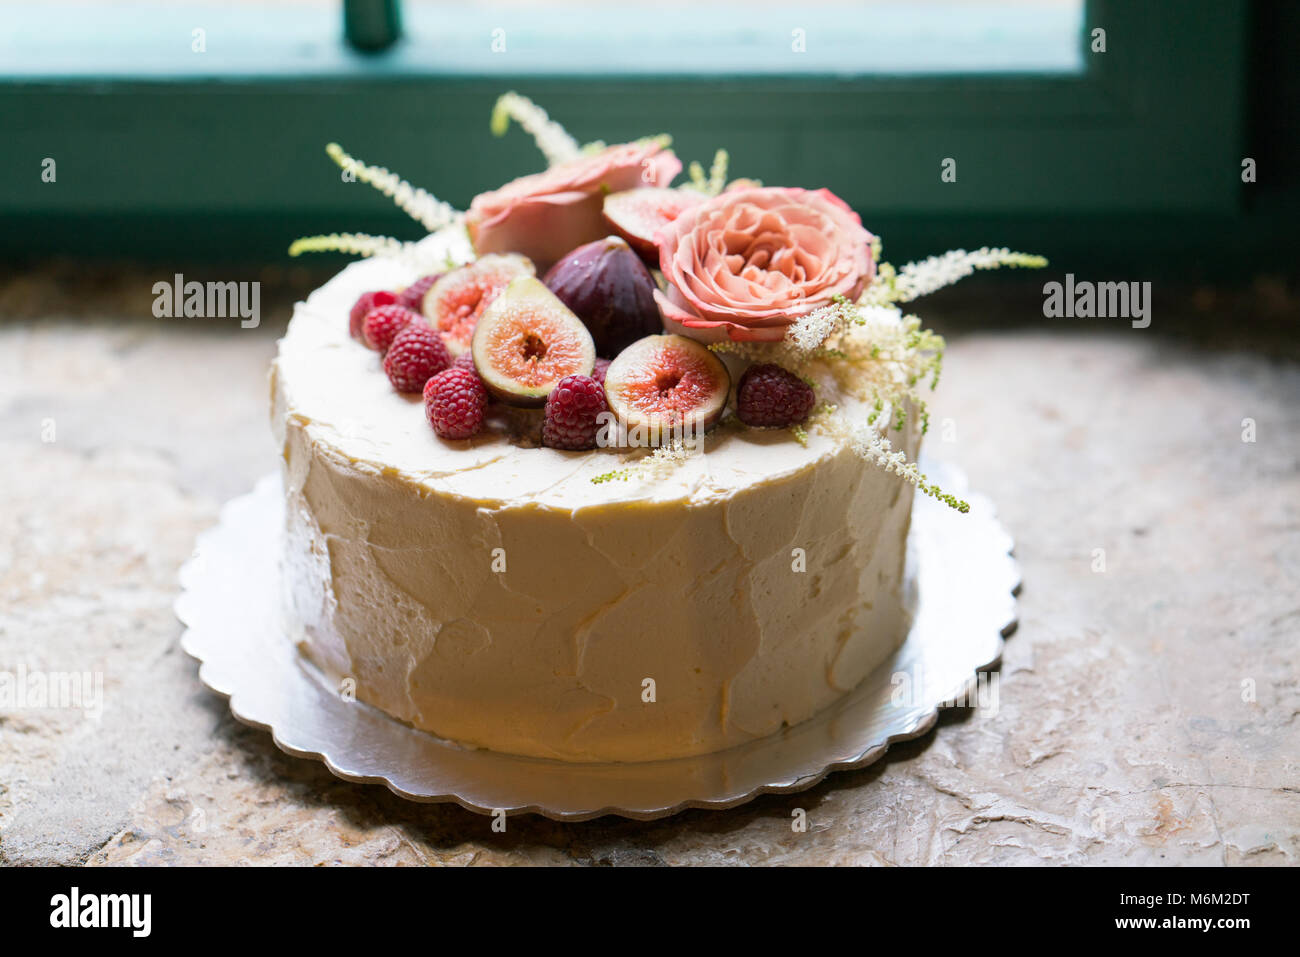 Homemade wedding cake decorated with flowers and fruits - Stock Image